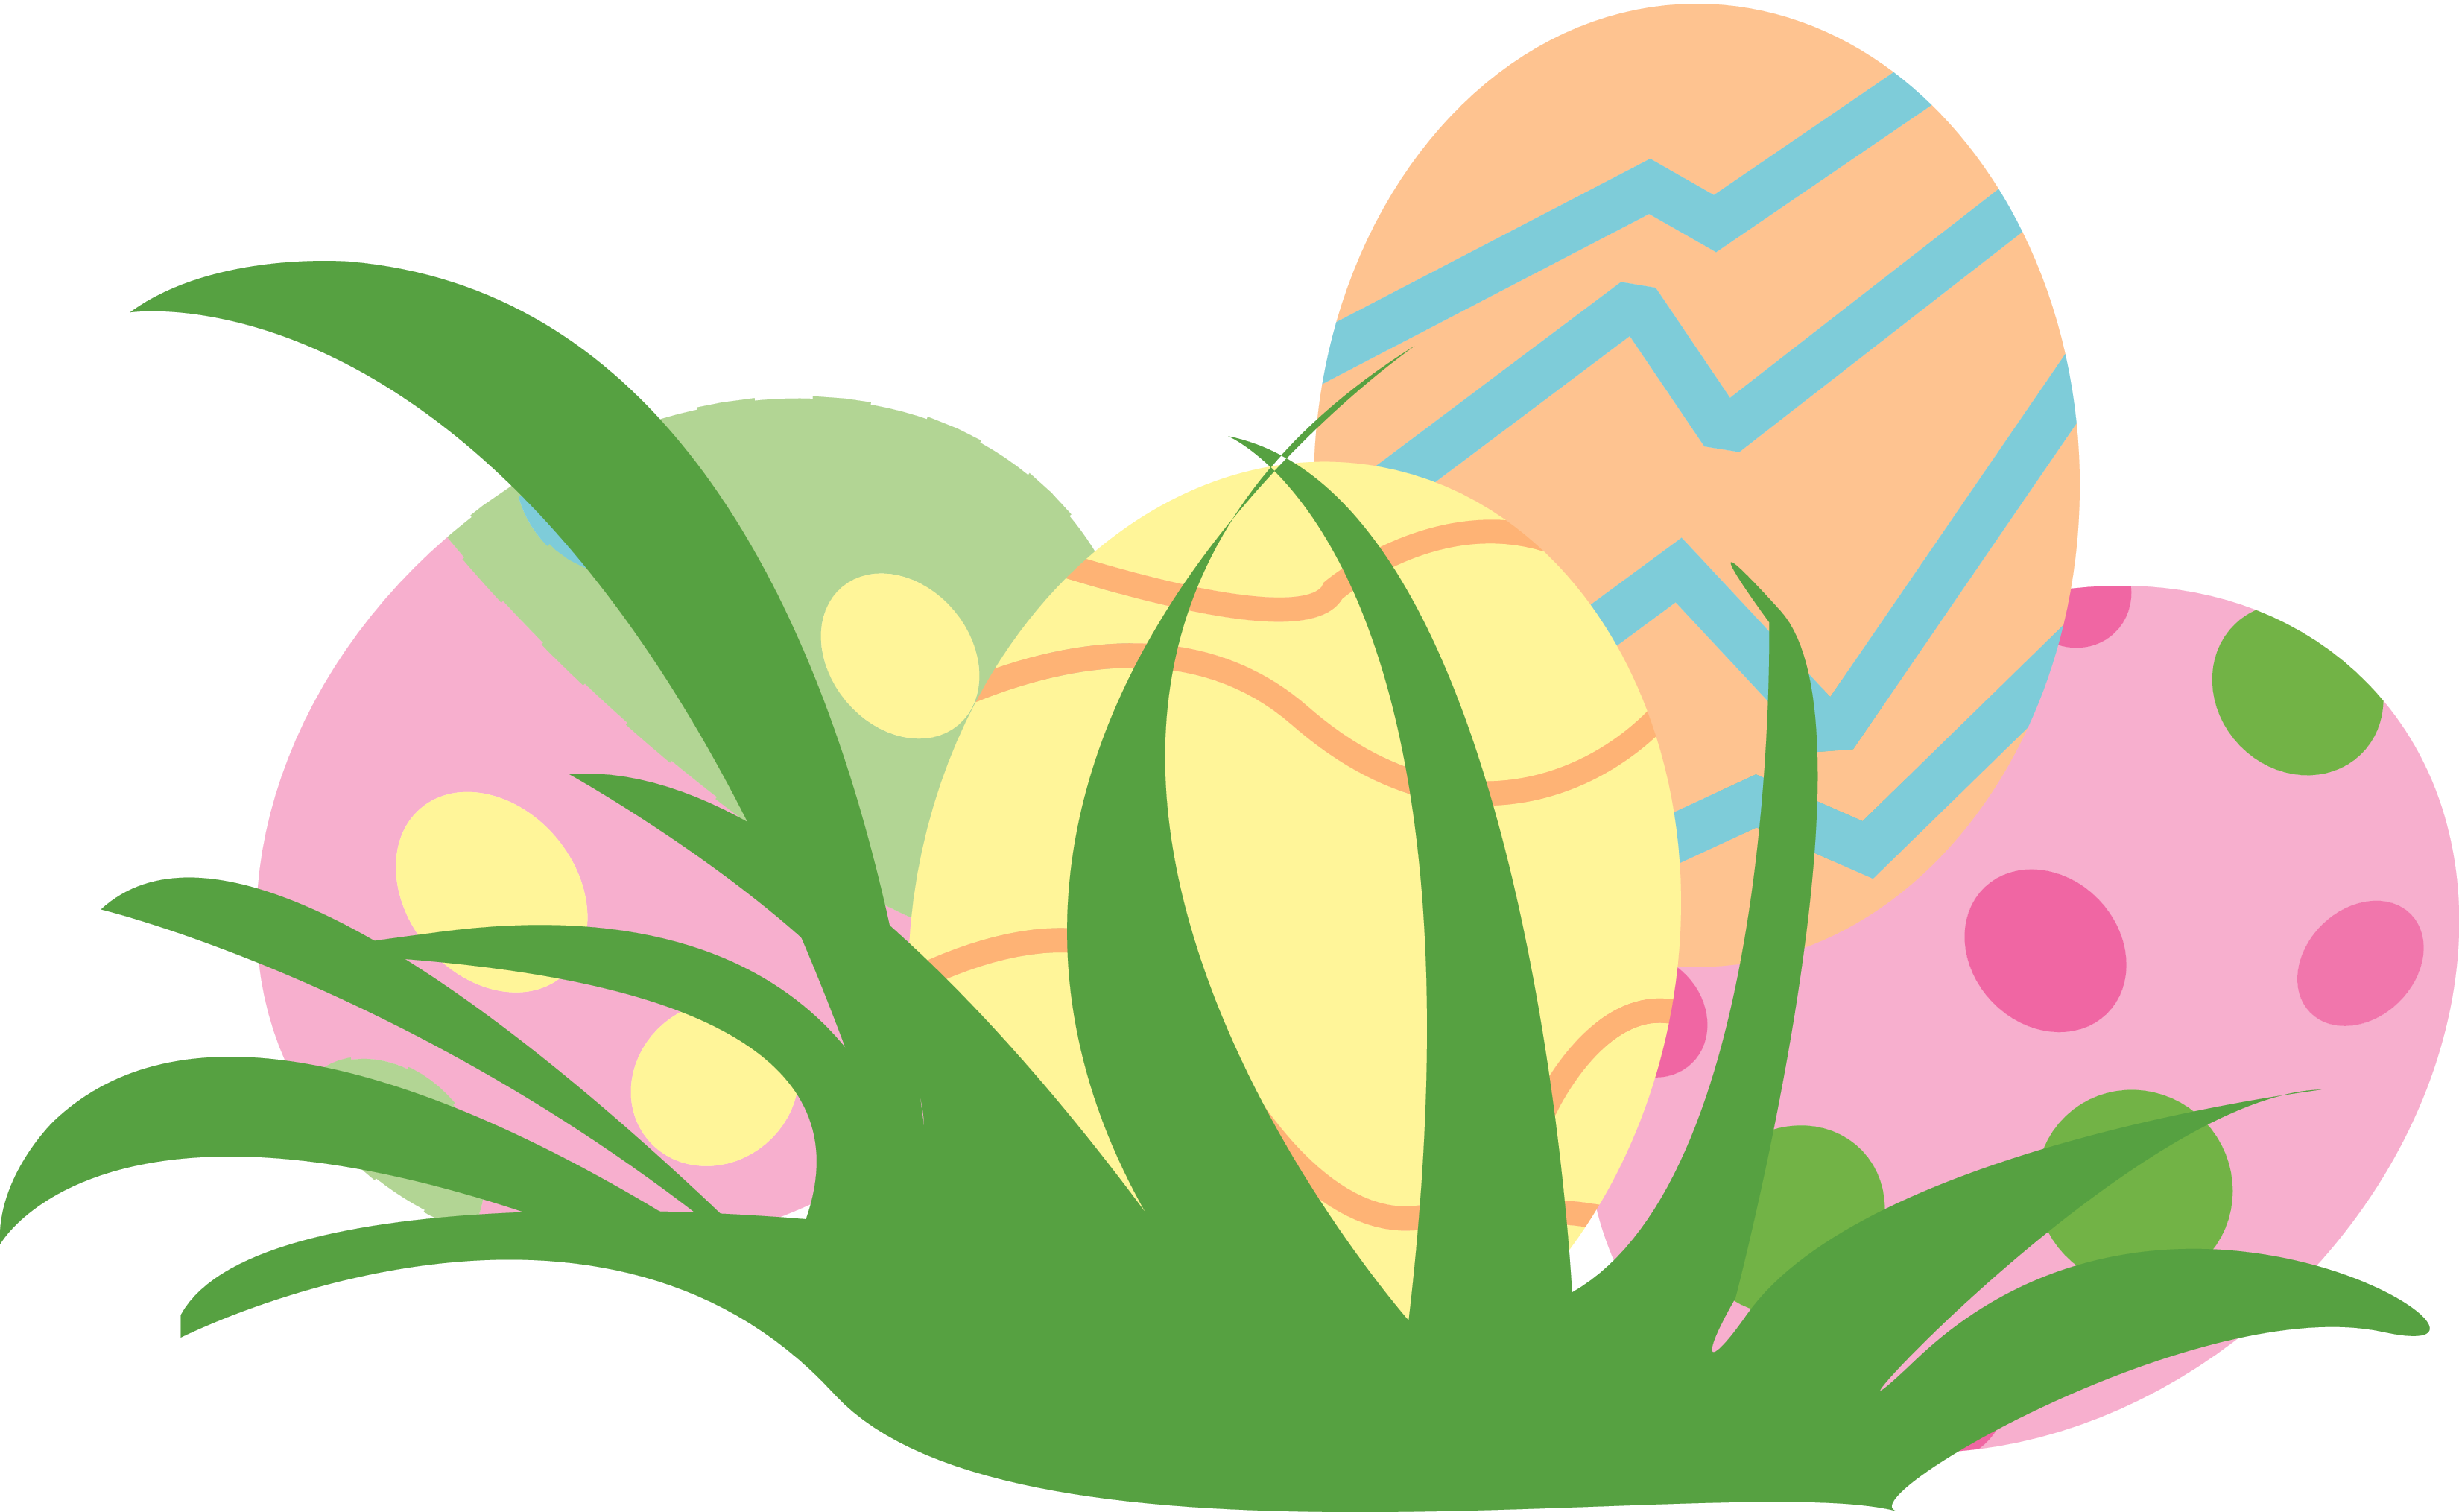 Easter egg hunt bw clipart clip art library stock Pin by denise ernst on Easter/Spring | Pinterest | Easter and Cards clip art library stock